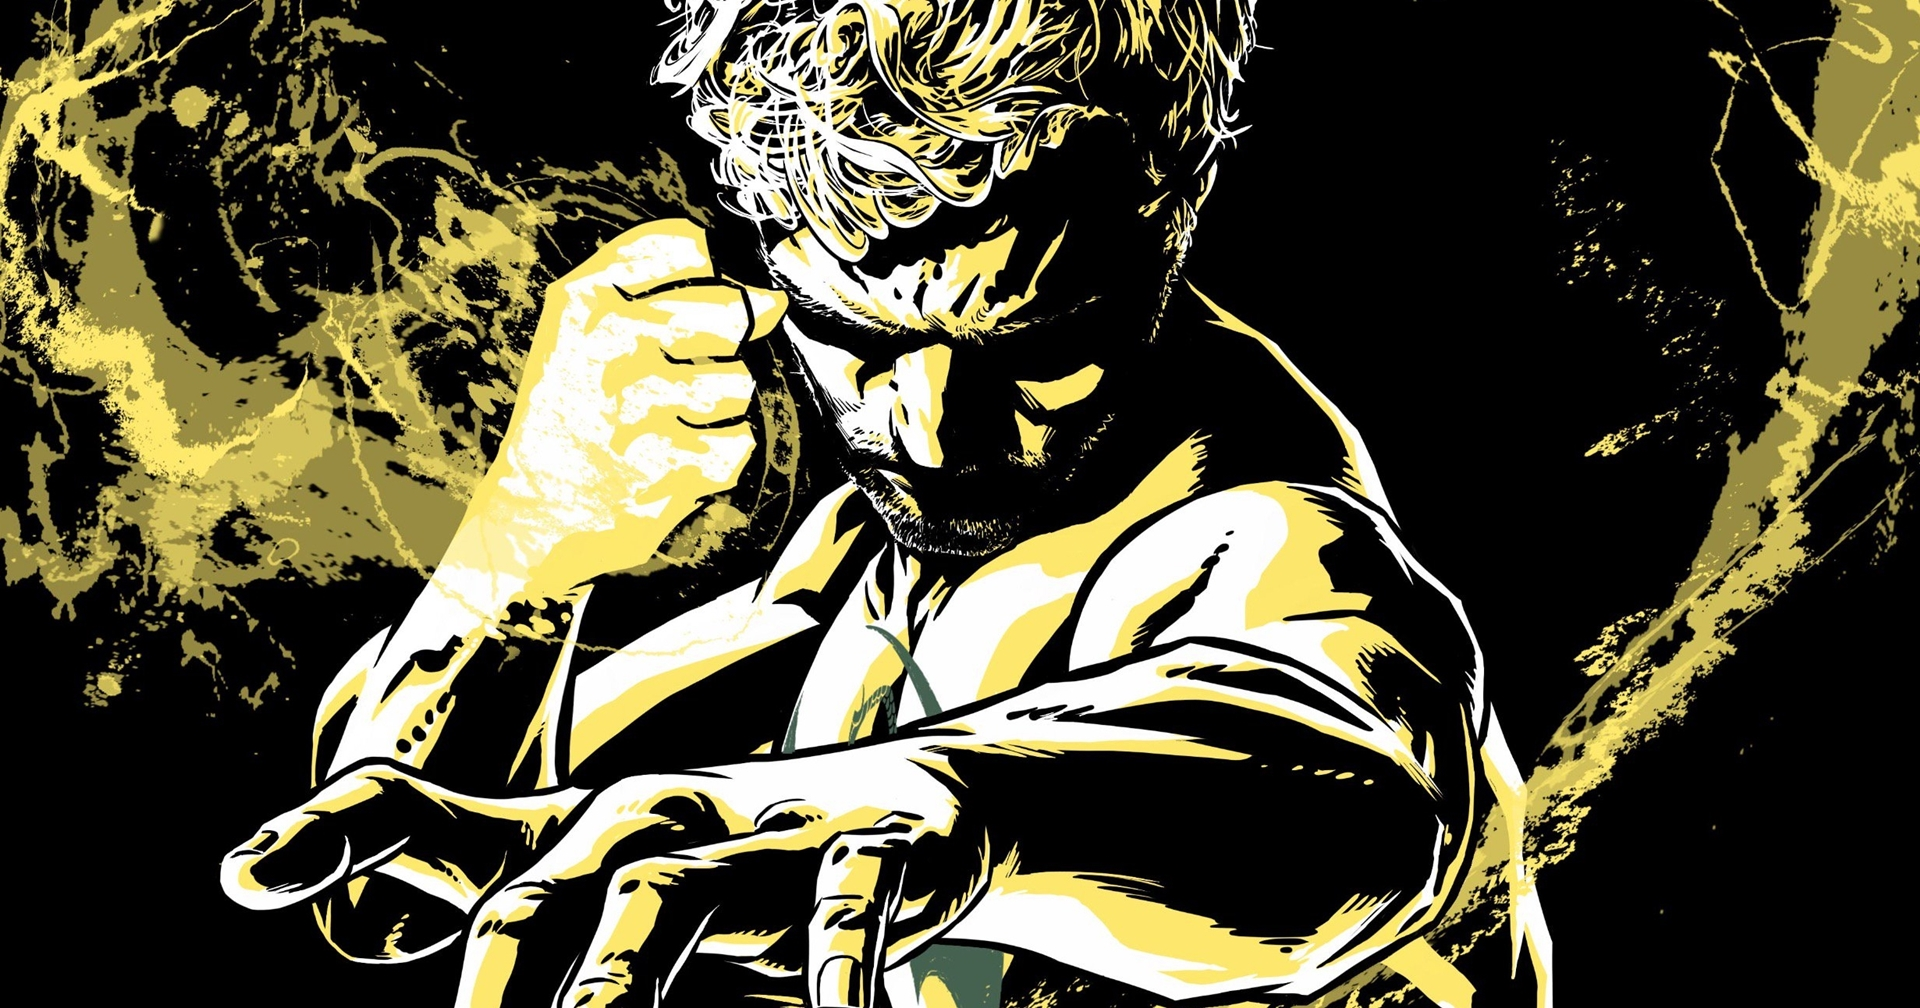 iron_fist_season_2_artwork_index.jpg